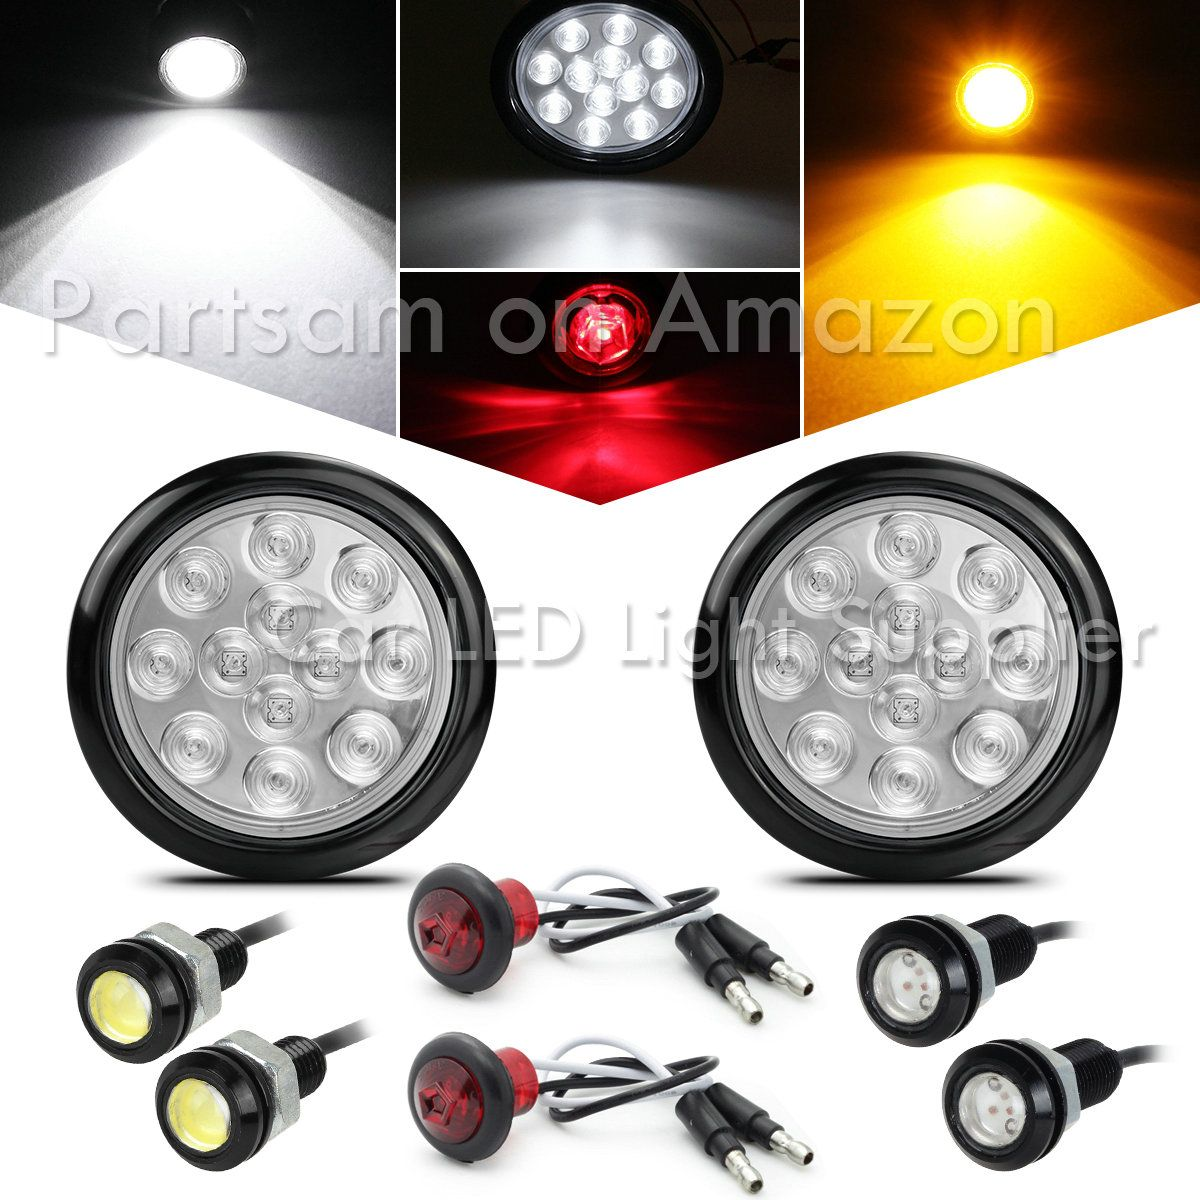 Partsam 12v 4 Round Led Truck Trailer Rv Stop Turn Tail Lights Chrome Grommets 12led 4 Round Le Truck And Trailer Car Parts And Accessories Car Led Lights